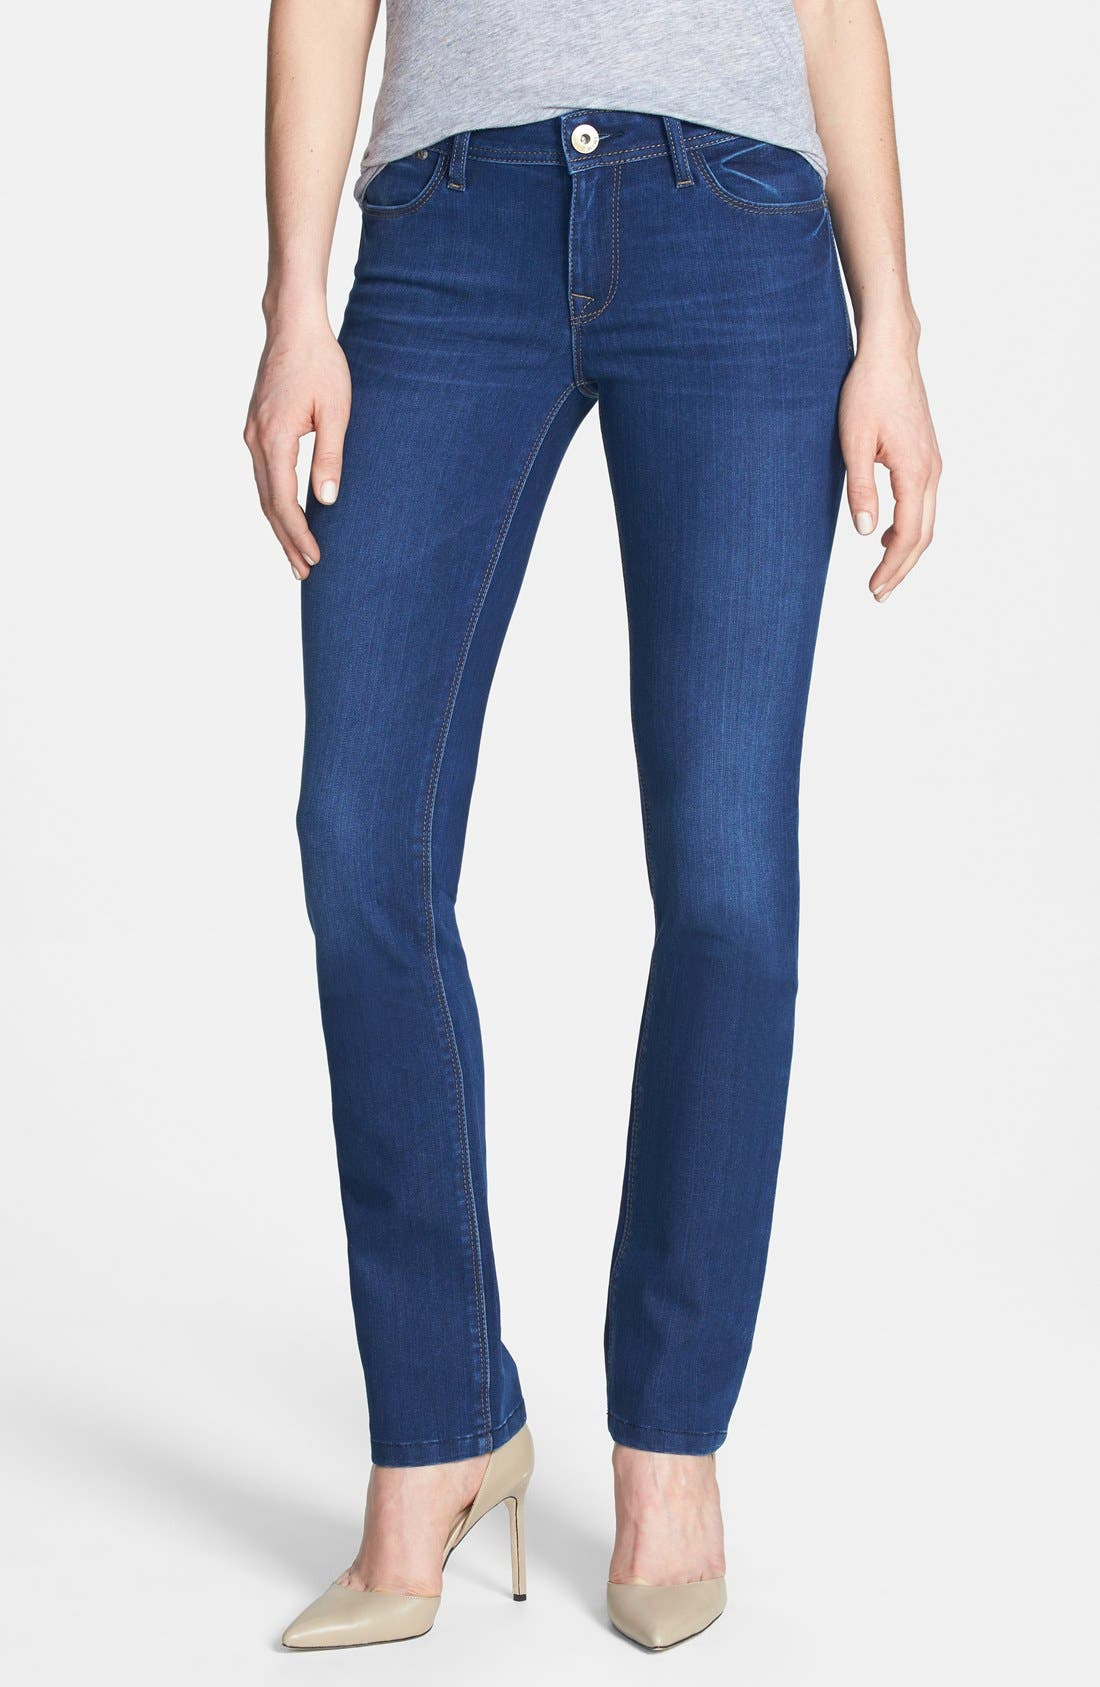 Alternate Image 1 Selected - DL1961 'Grace' Straight Jeans (Dyer)